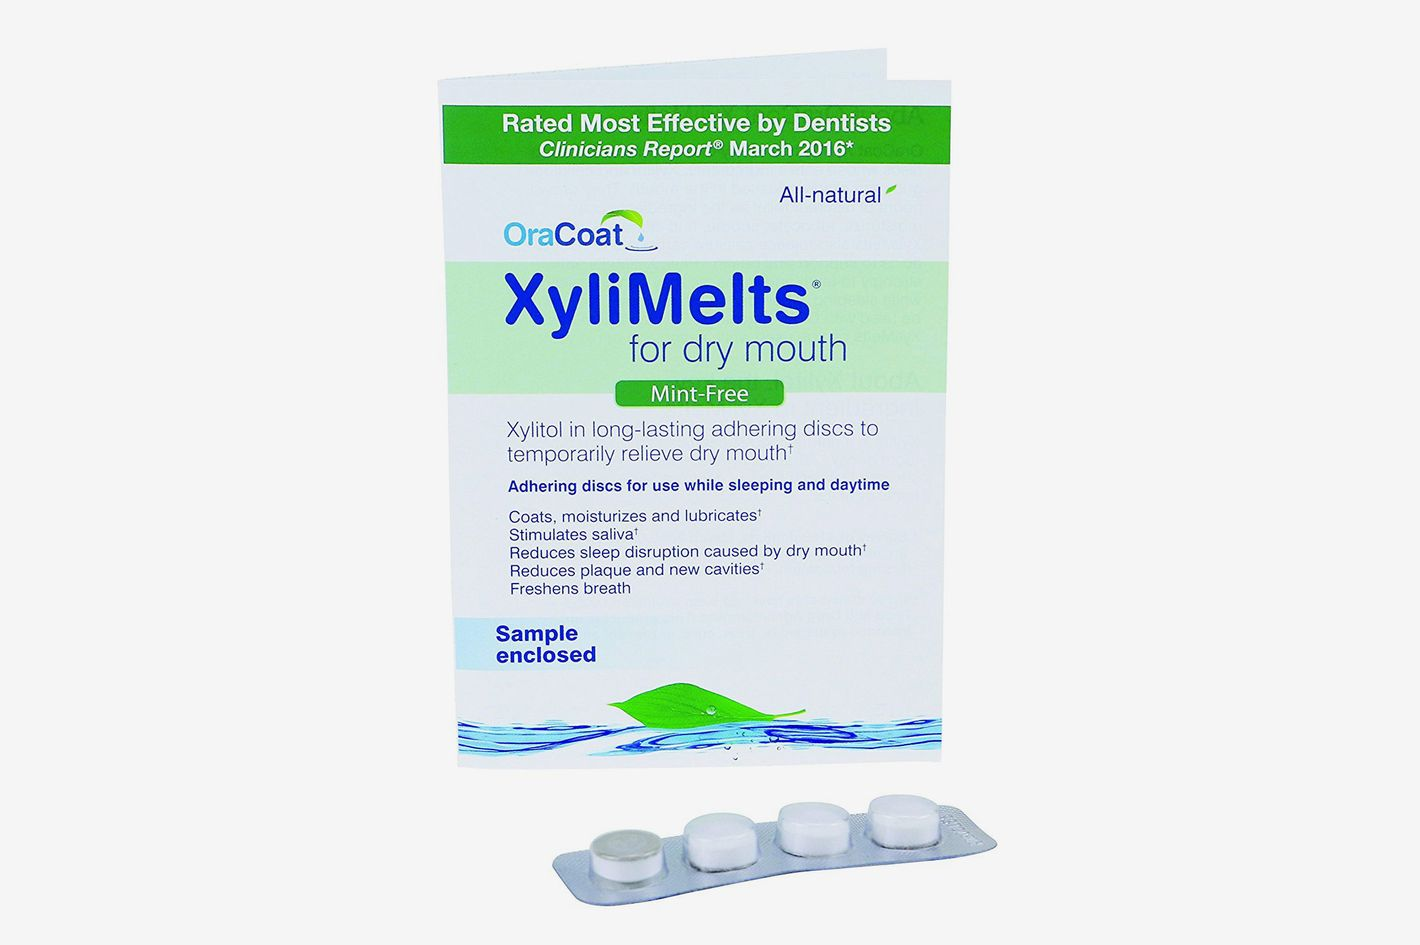 OraCoat Xylimelts for Dry Mouth (4 Count)